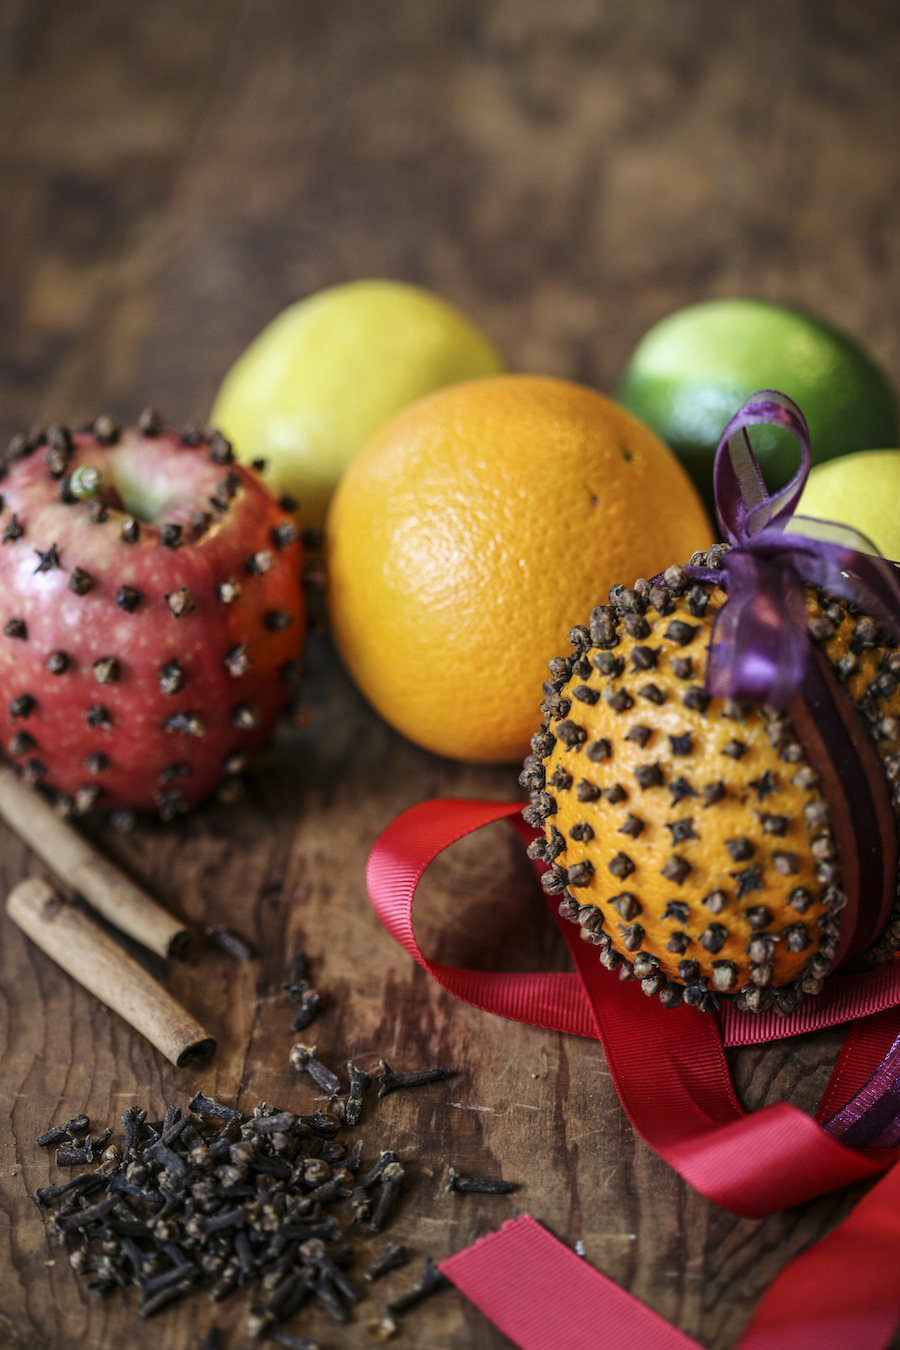 Clove Pomanders: An Old Fashioned Holiday Favorite | Herbal Academy | Celebrate the season and decorate your home naturally with homemade clove pomanders.